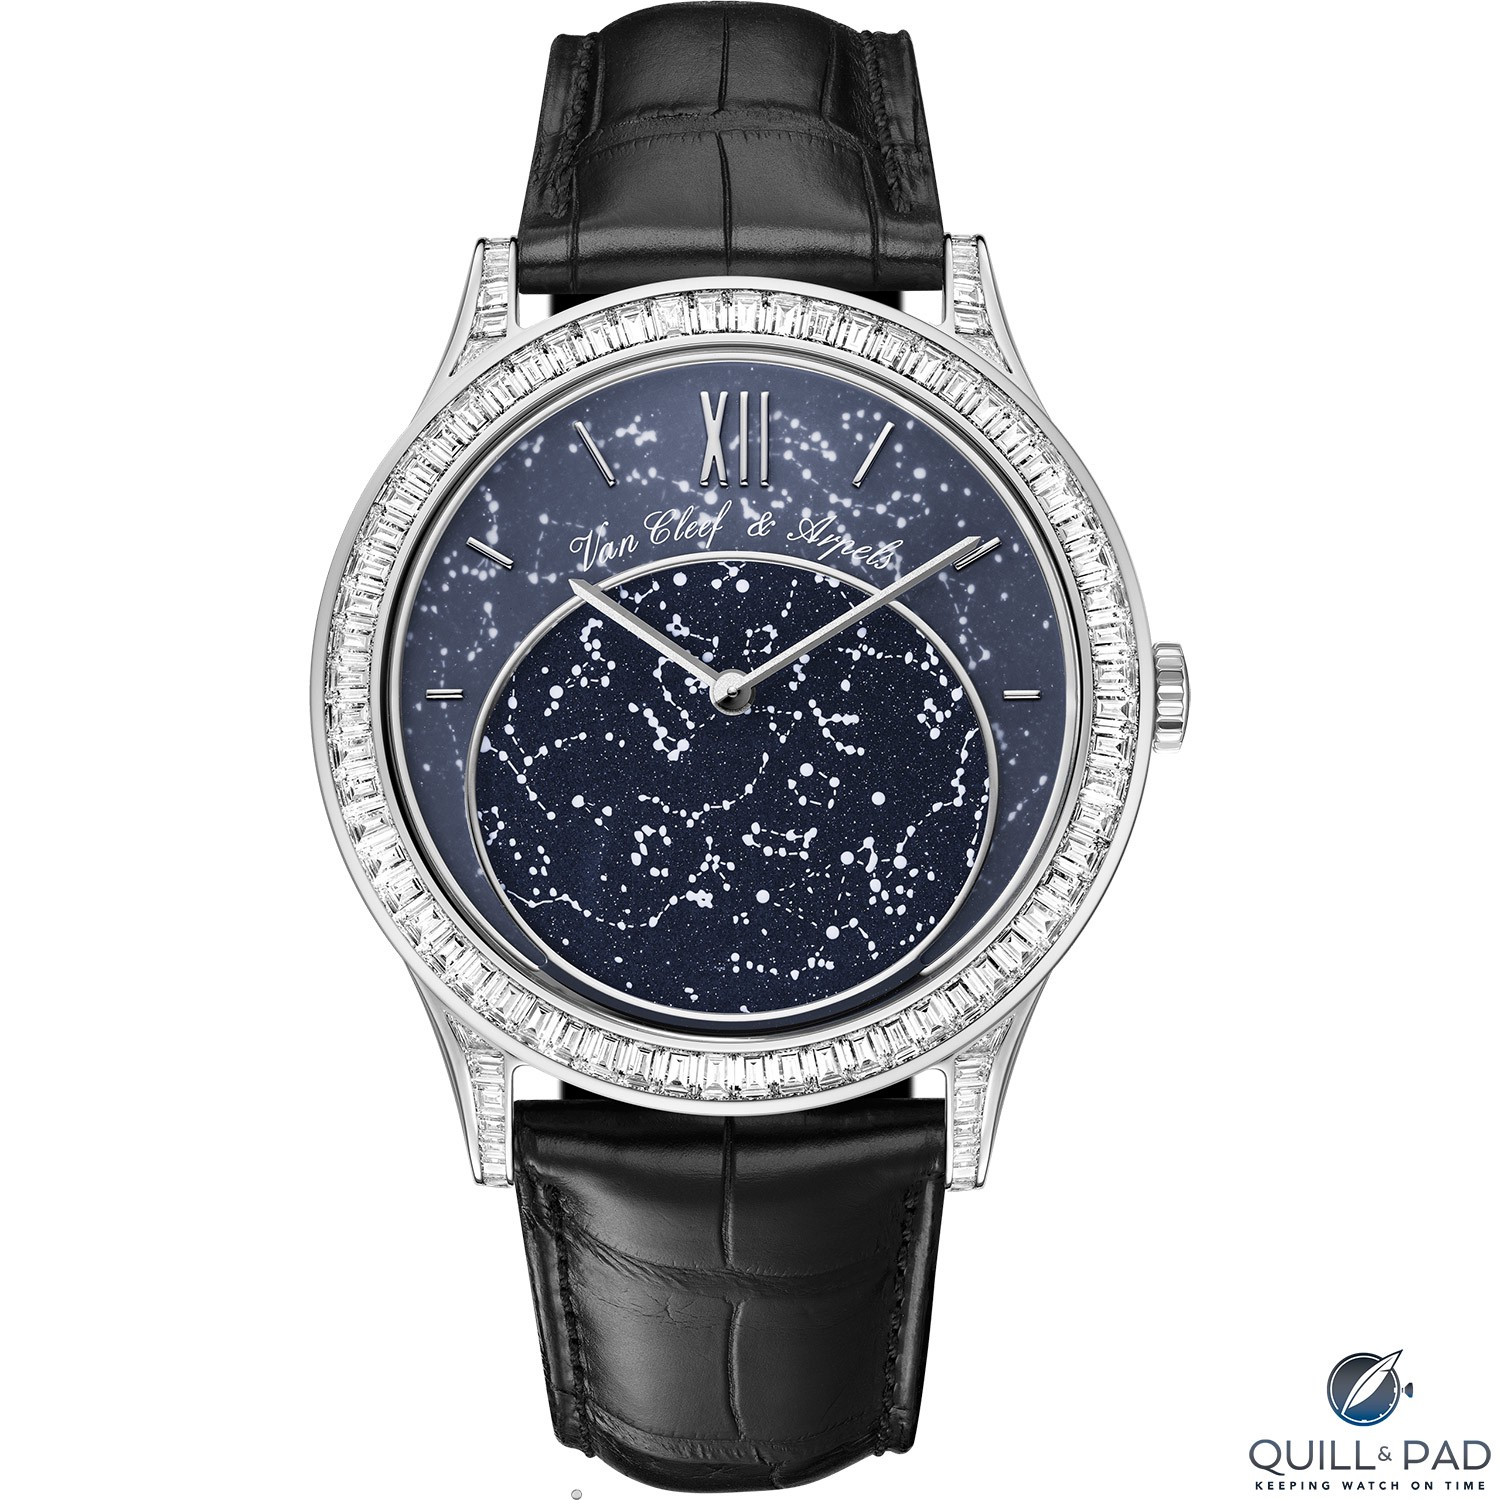 Van Cleef & Arpels Midnight in Paris from 2008 constituted the brand's first use of aventurine